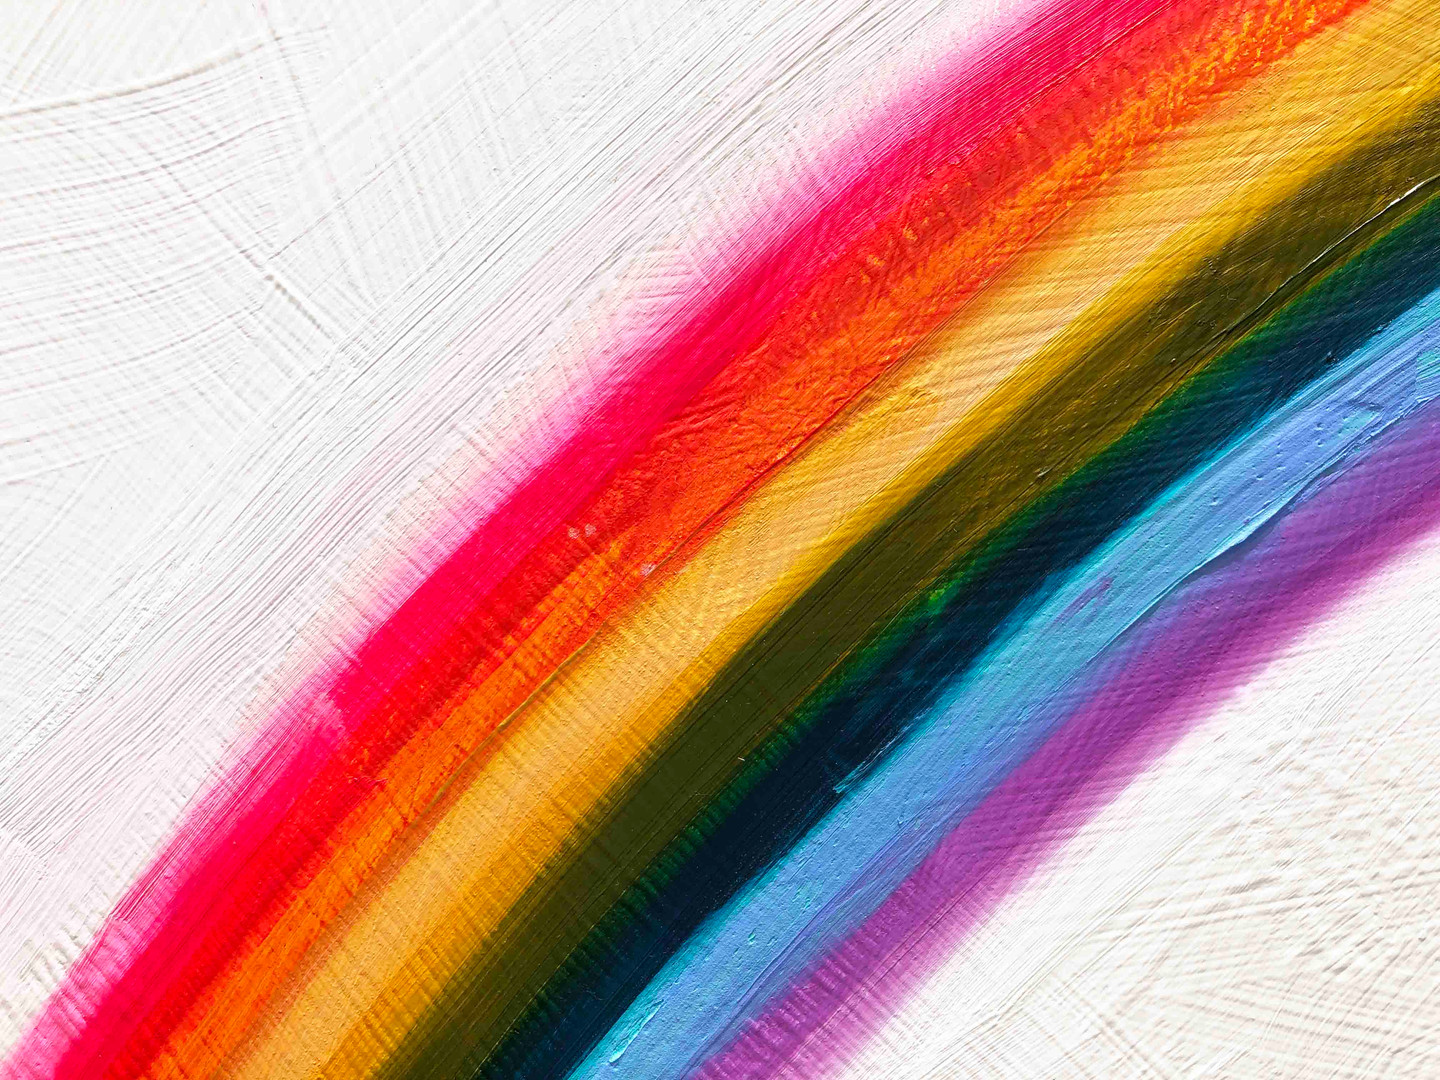 Rainbow Frequency close up 1